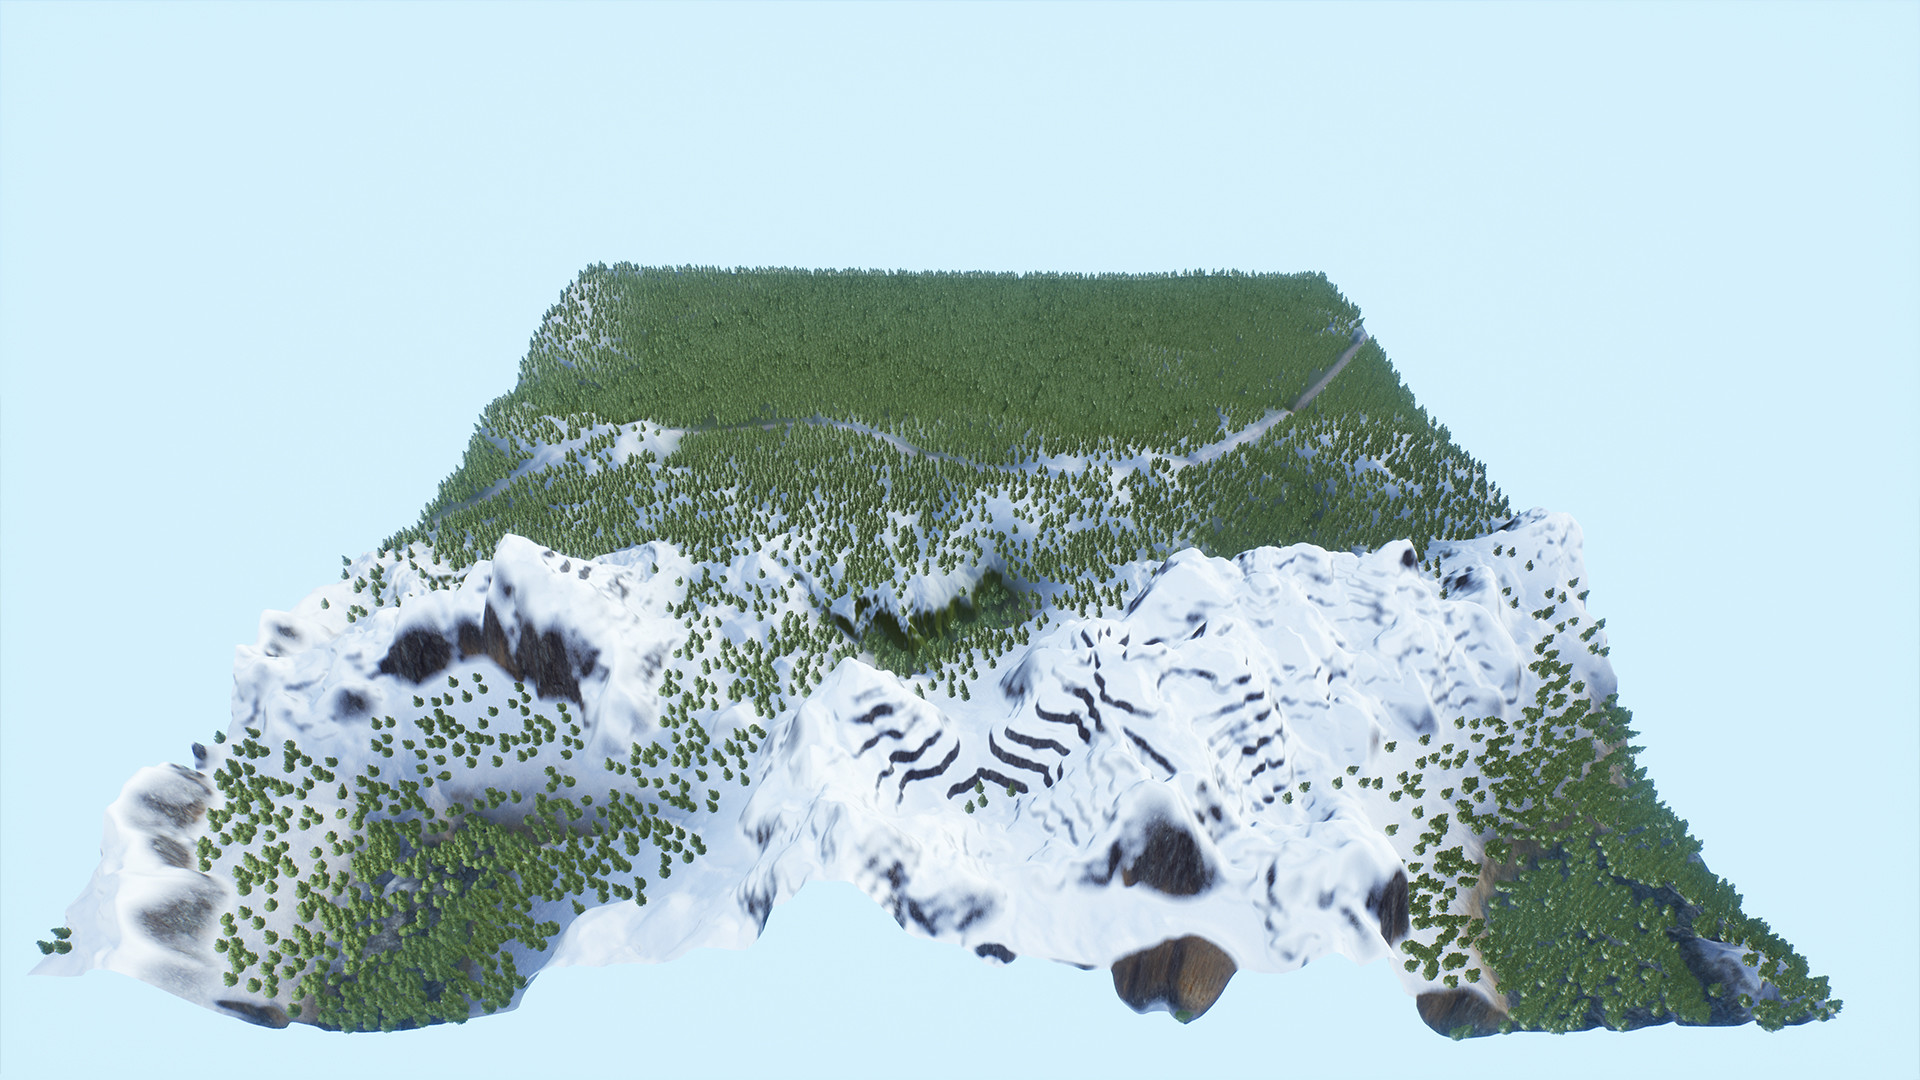 Overview of the third terrain.